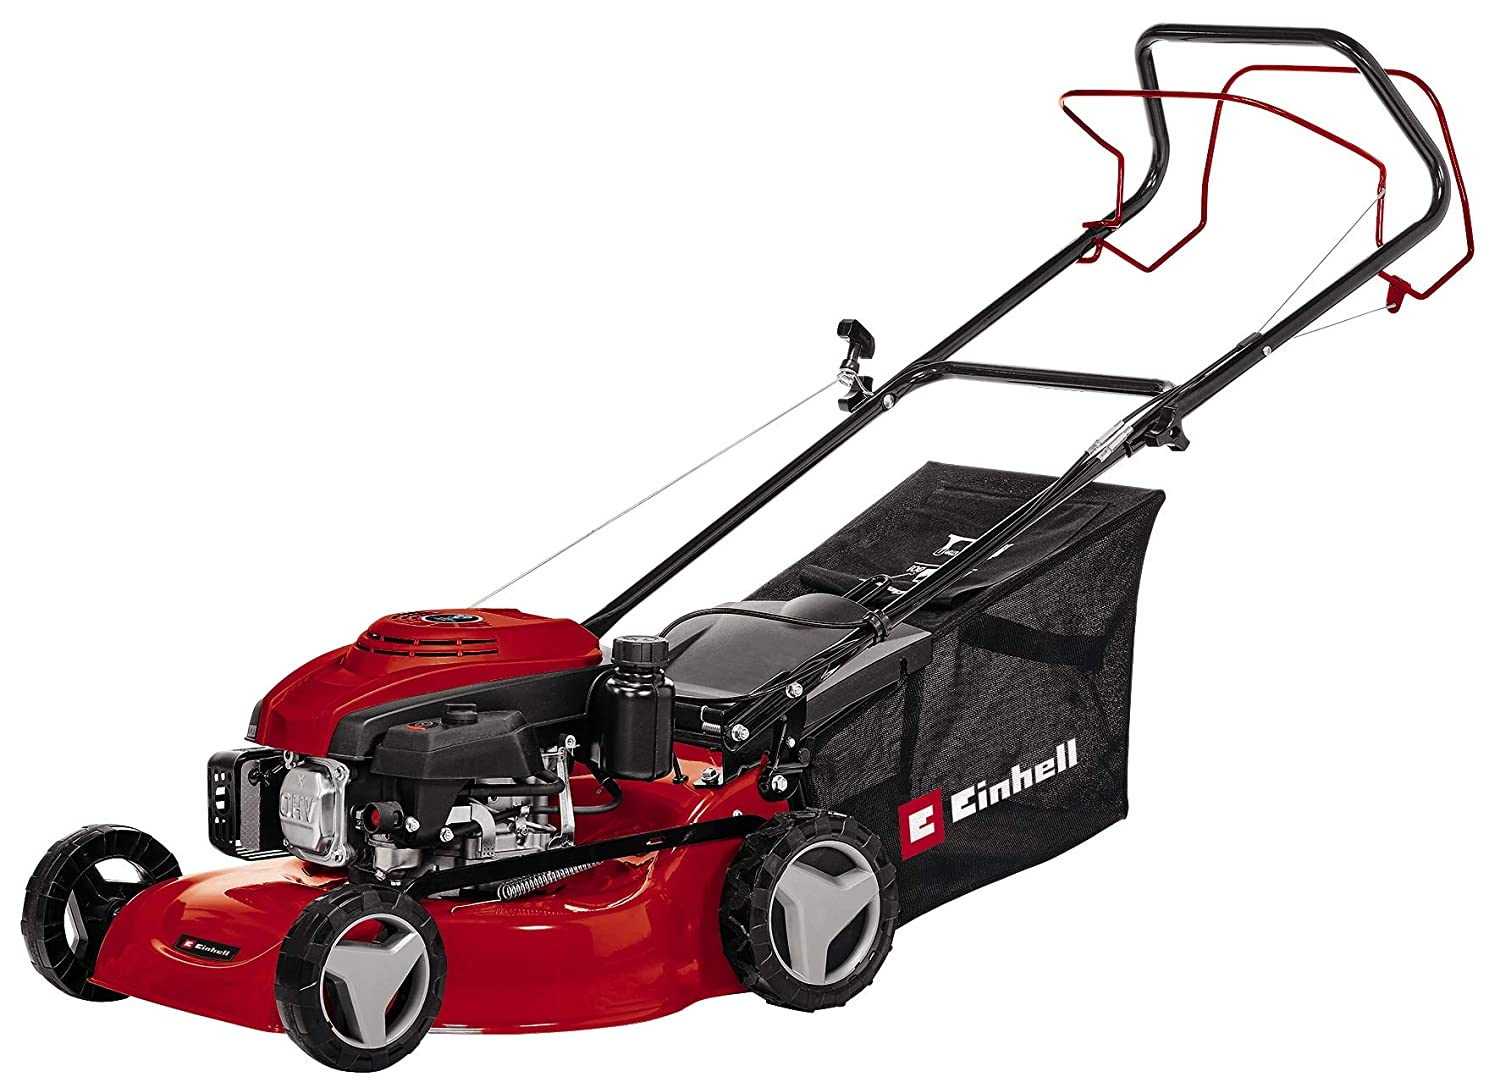 Einhell GC-PM 46 S - Cortacésped (Cortacésped manual, 46 cm ...